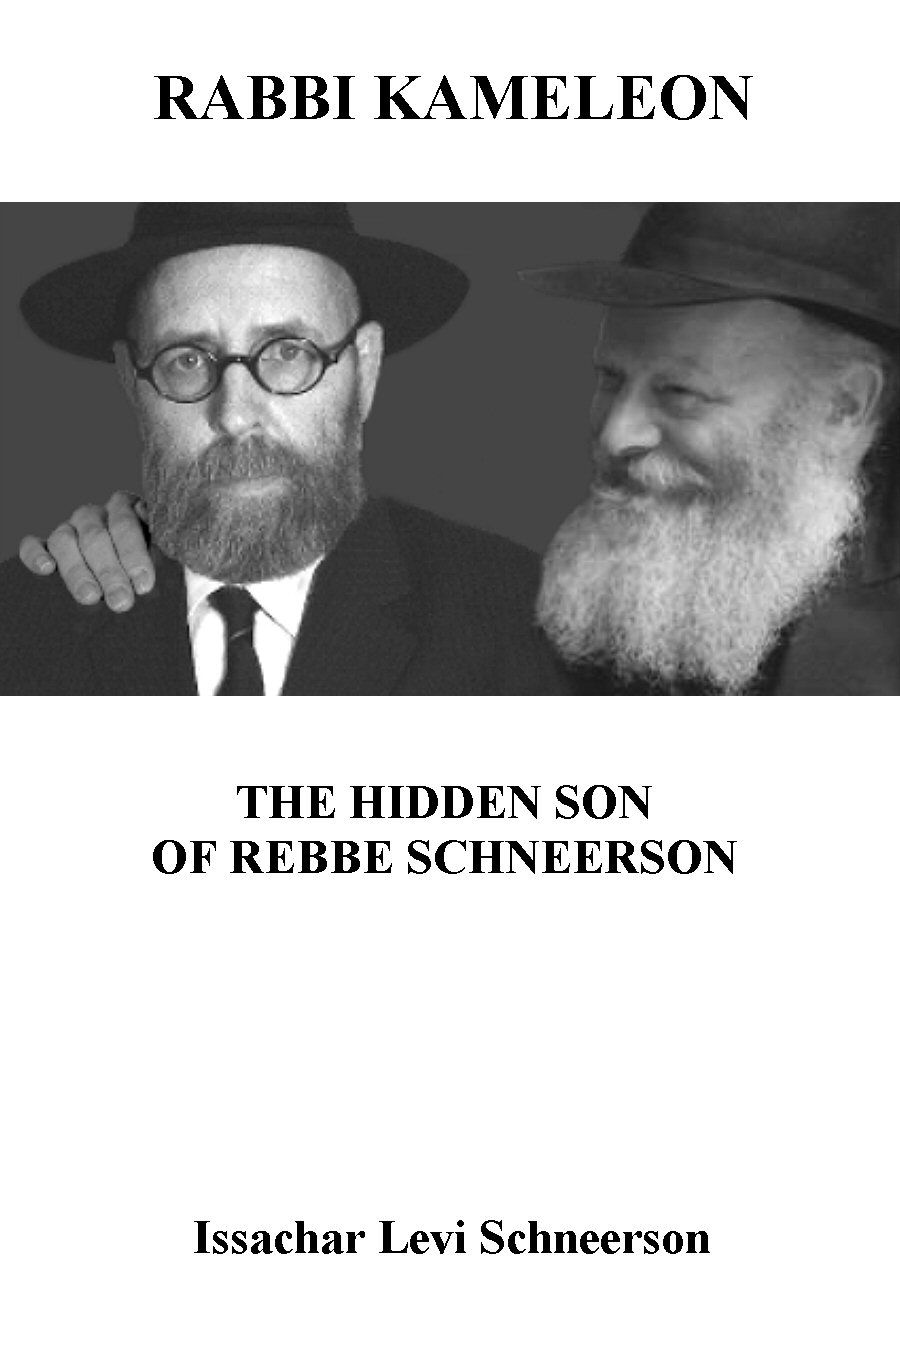 Rabbi Kameleon